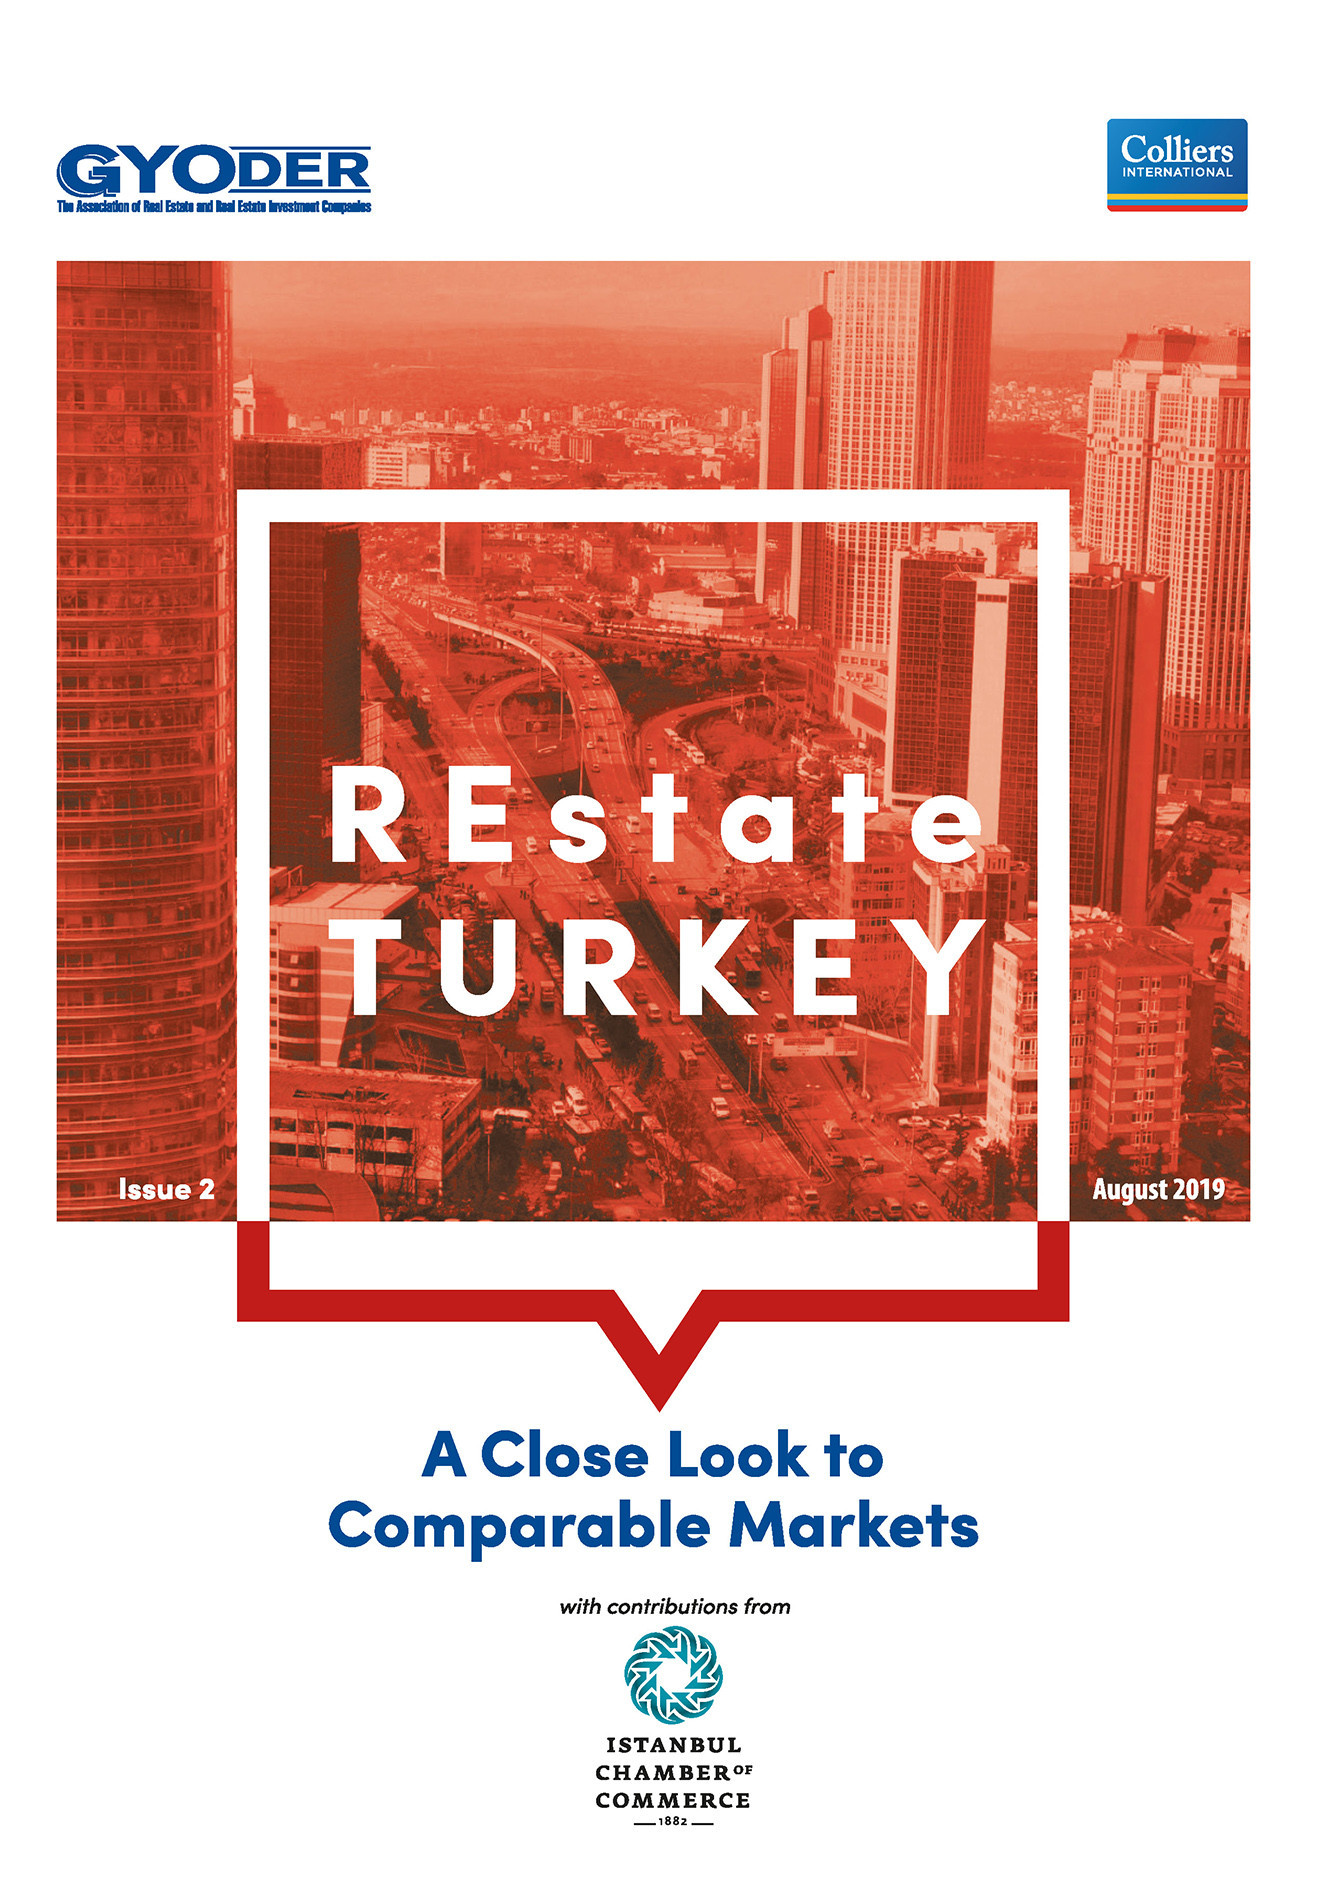 REstate Turkey - A Close Look to Comparable Markets / Issue 2